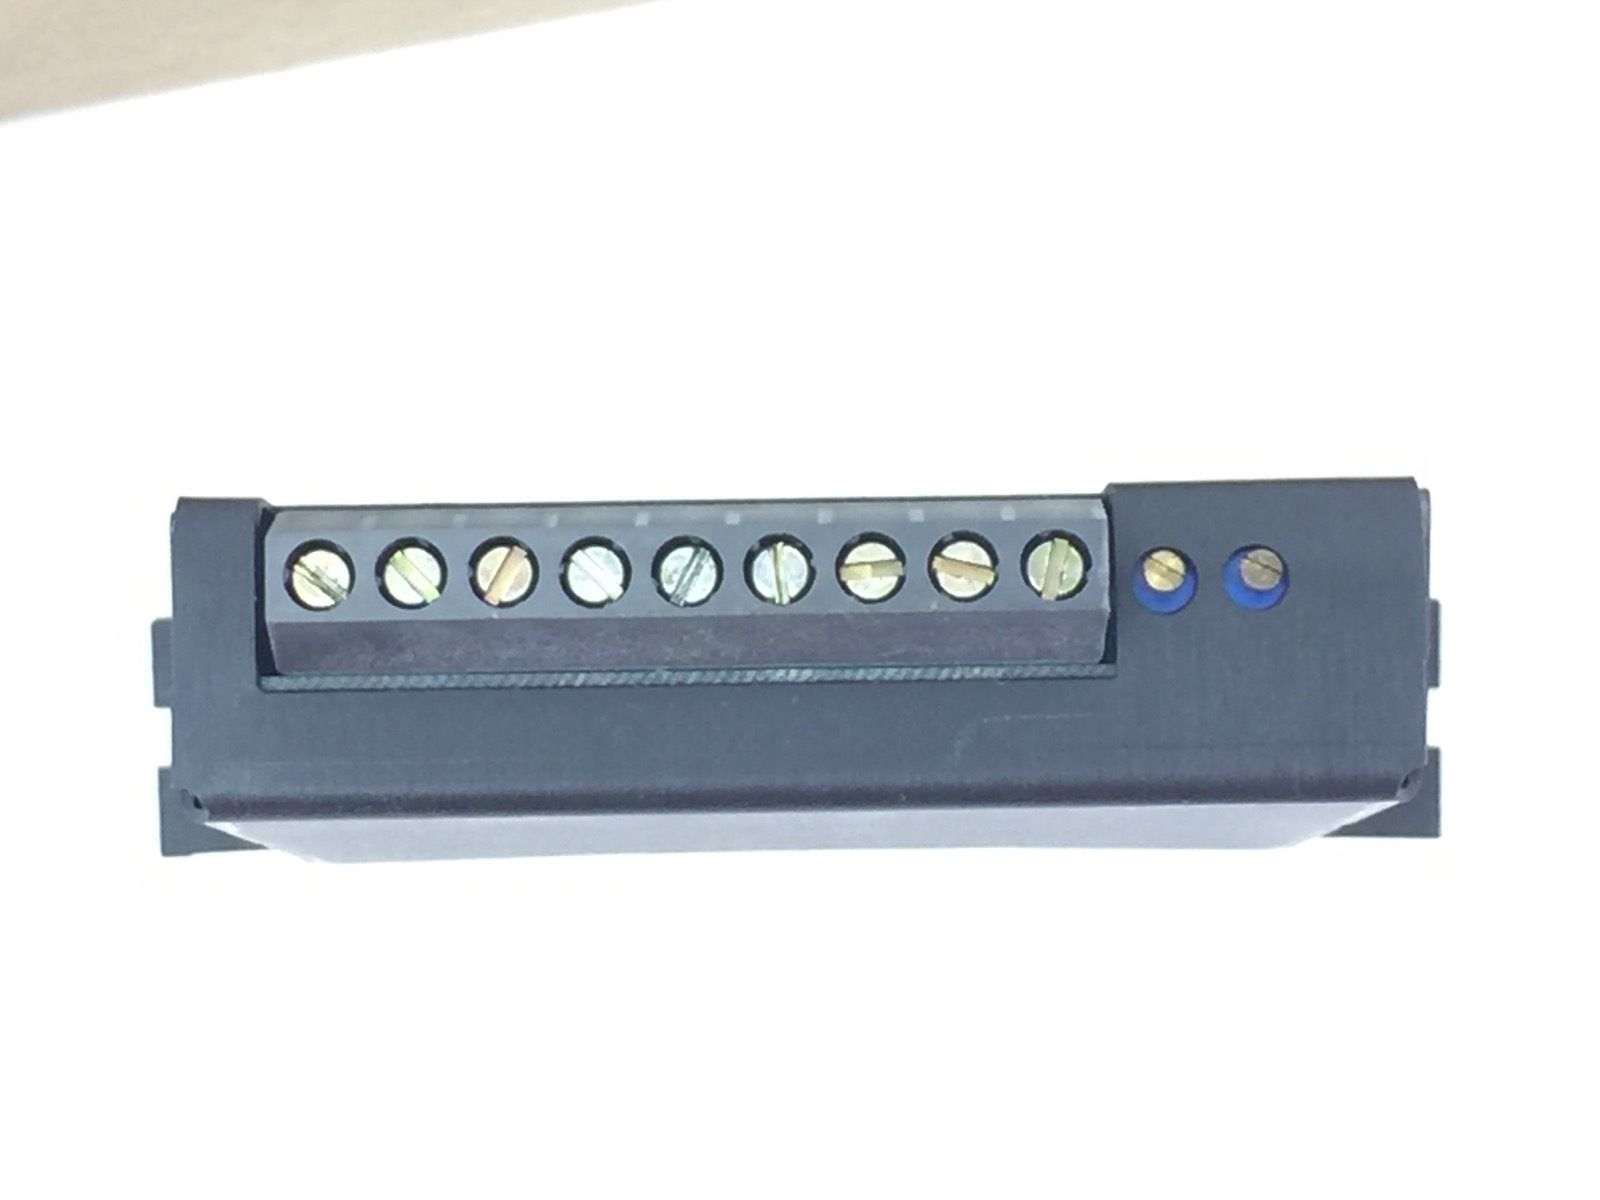 NEW! EATON DURANT 48160450 ANALOG TO FREQUENCY CONVERTER (H72) 4